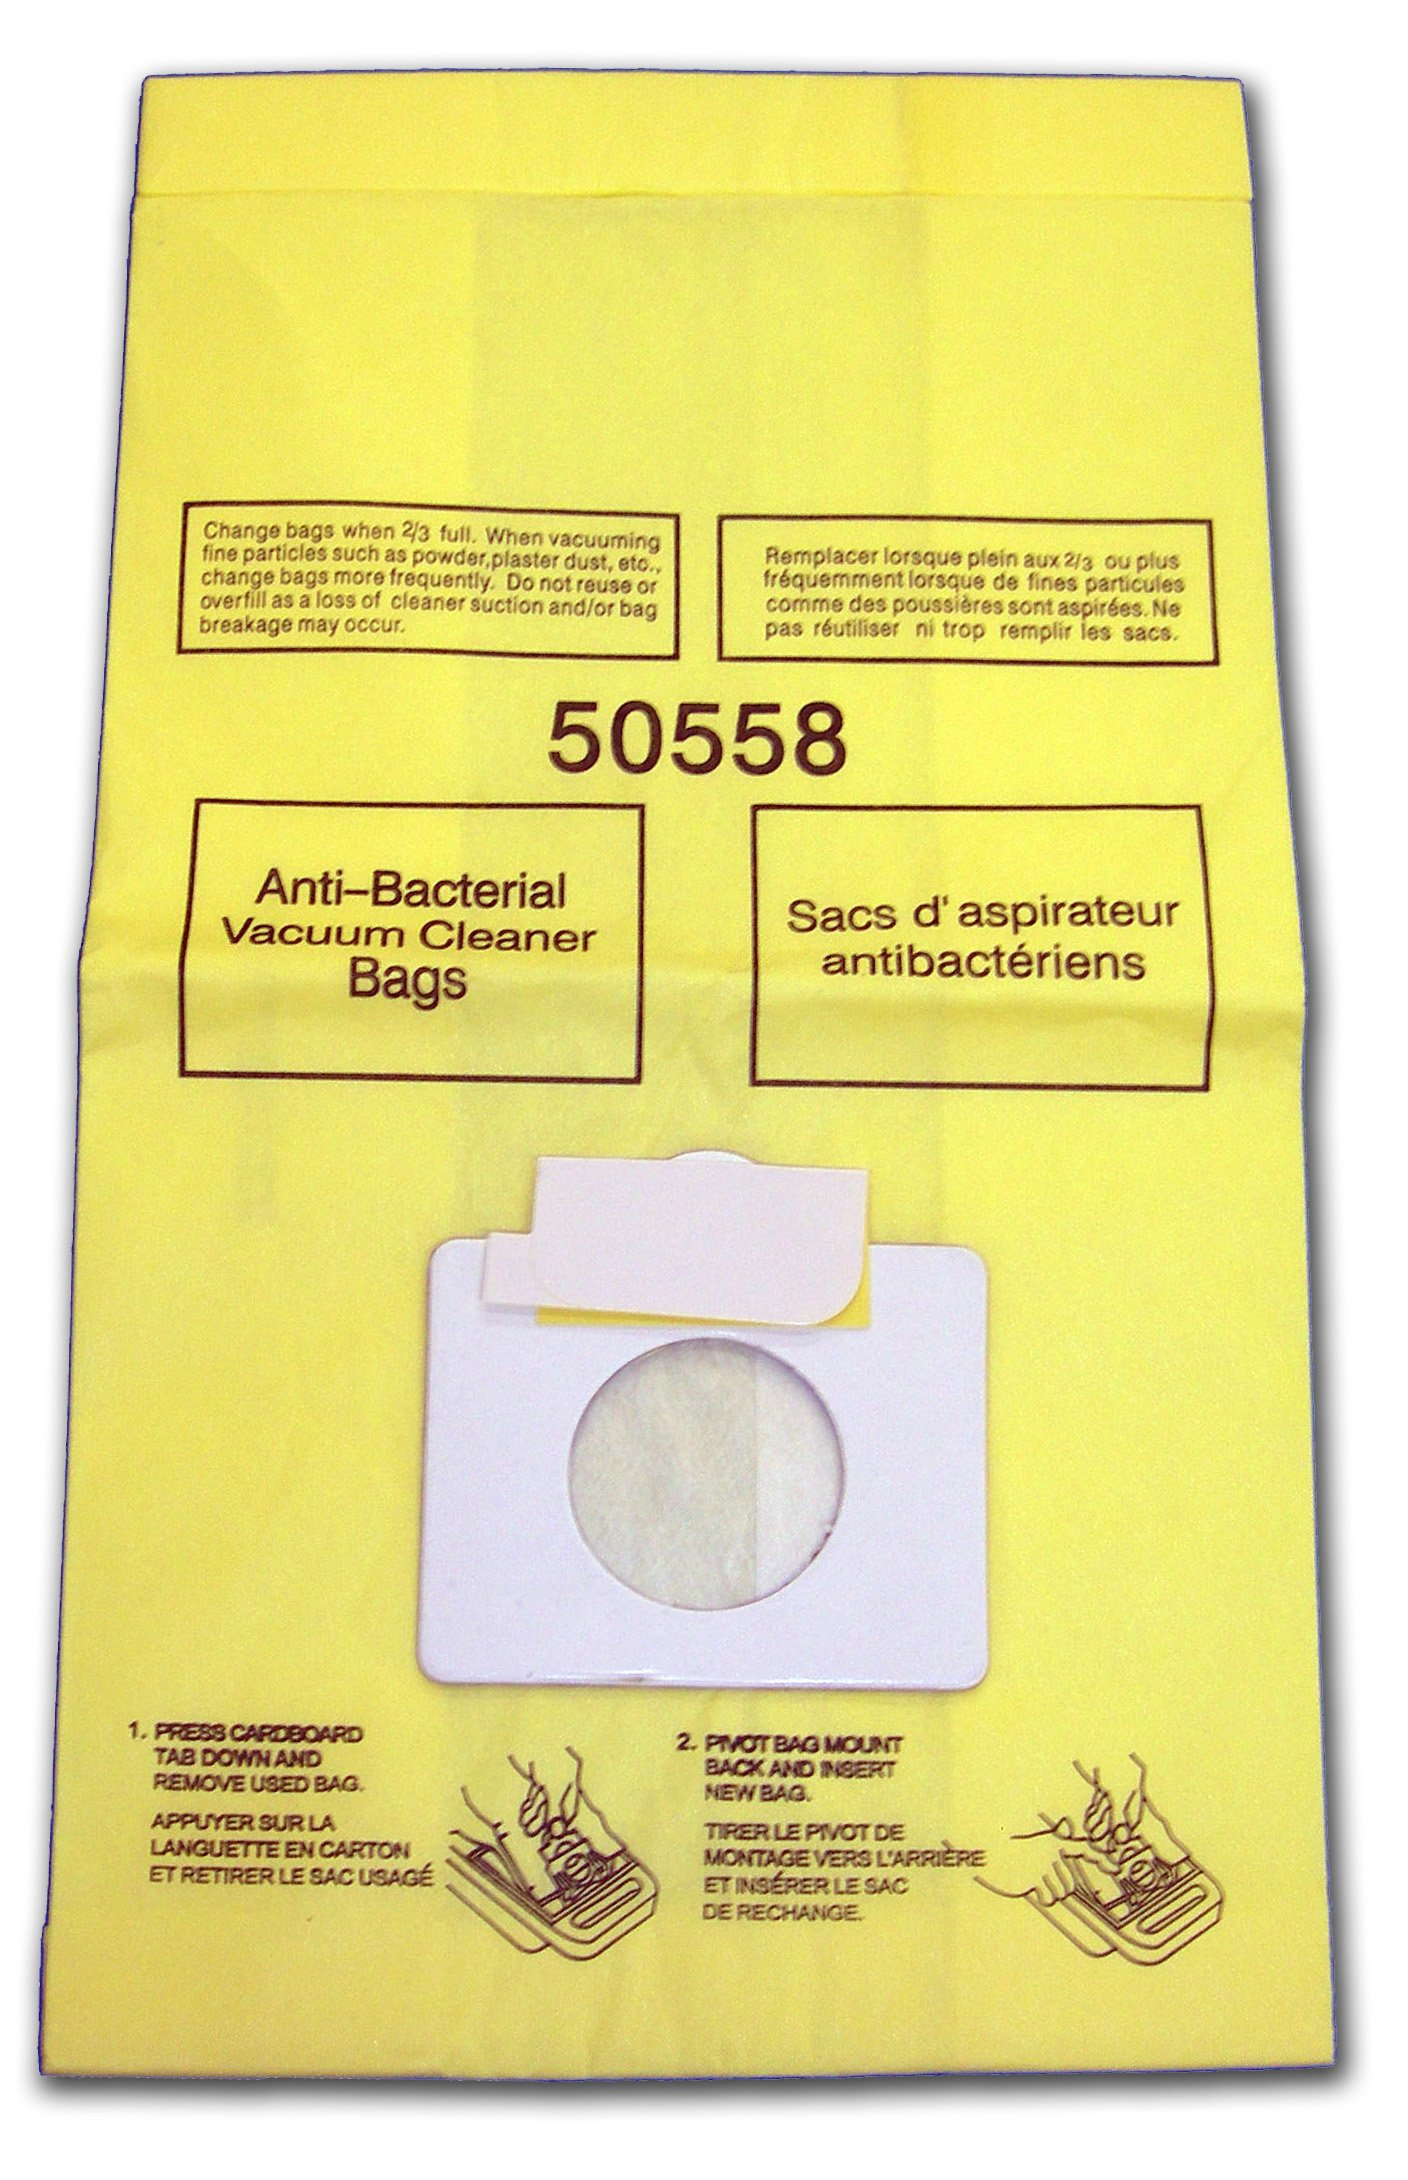 EnviroCare Replacement Vacuum Bags for Kenmore Canister Type C or Q 50555, 50558, 50557 and Panasonic Type C-5 27 Pack